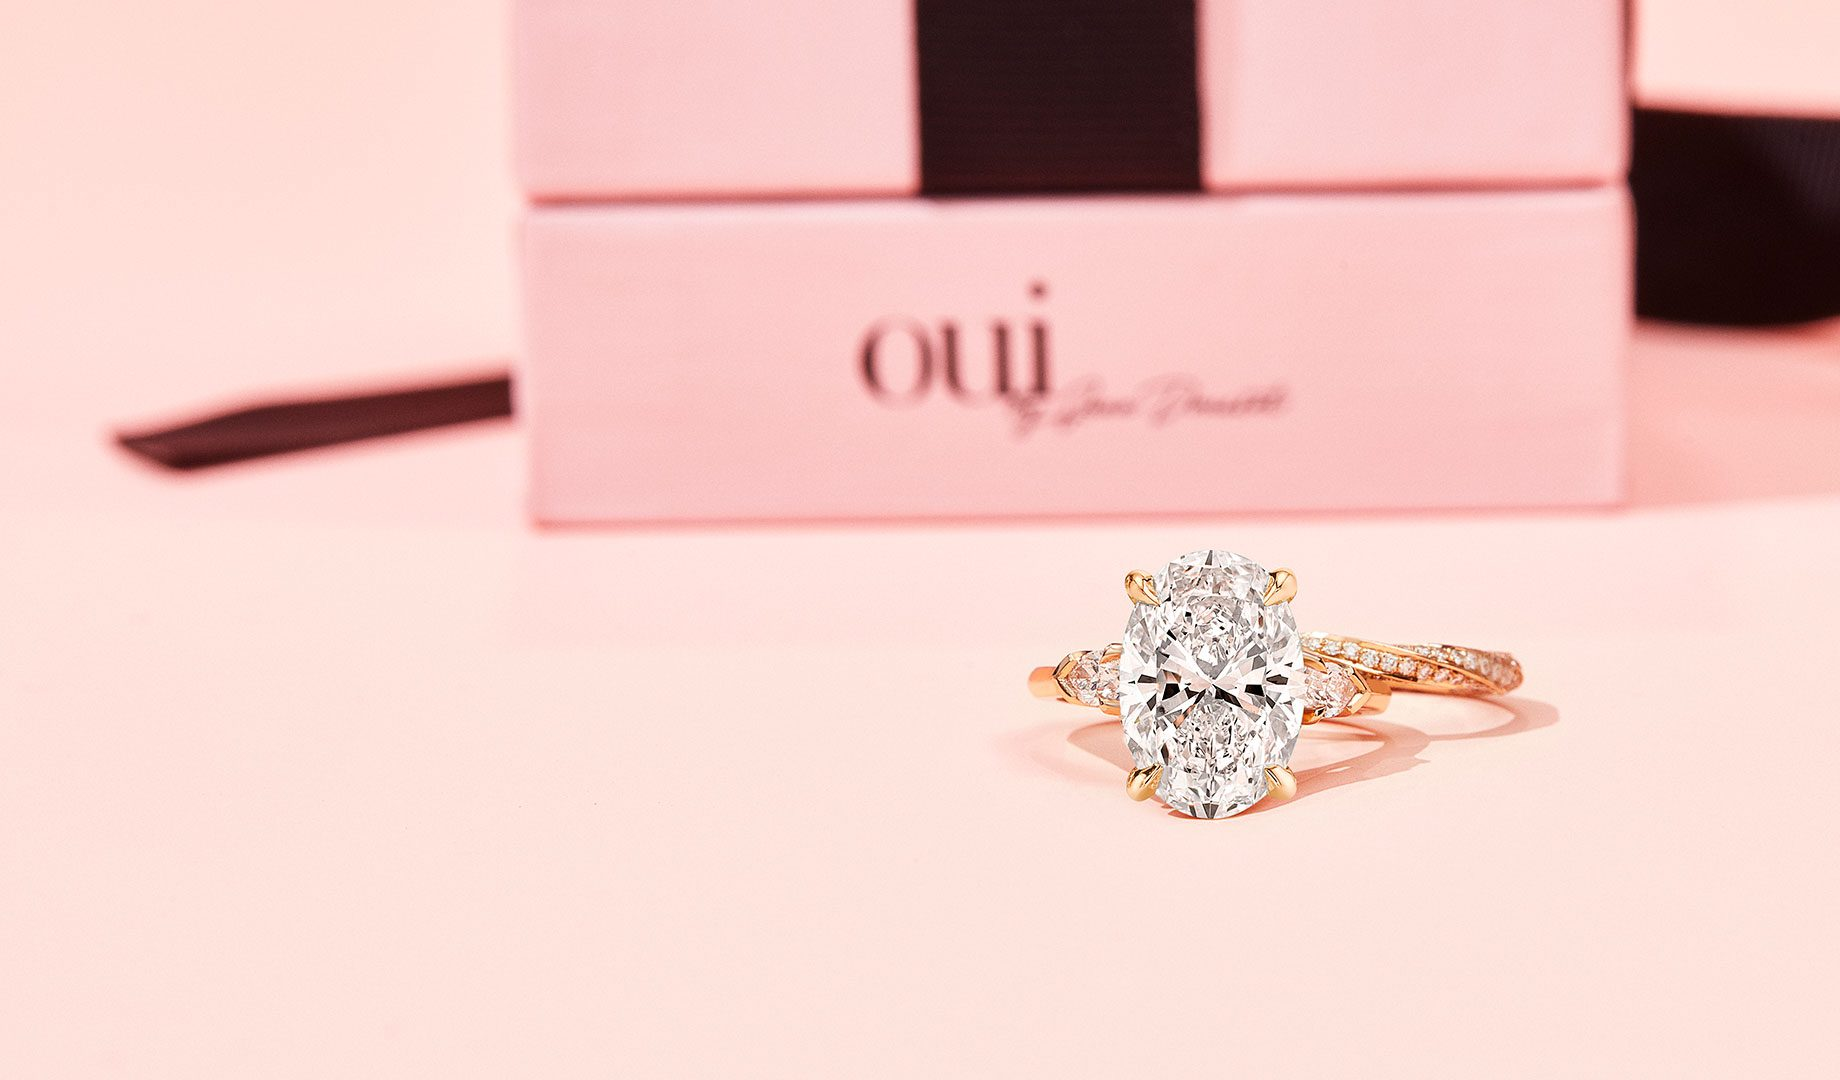 Claire Three Stone Lab Diamond Ring & Wedding Band on Pink Background